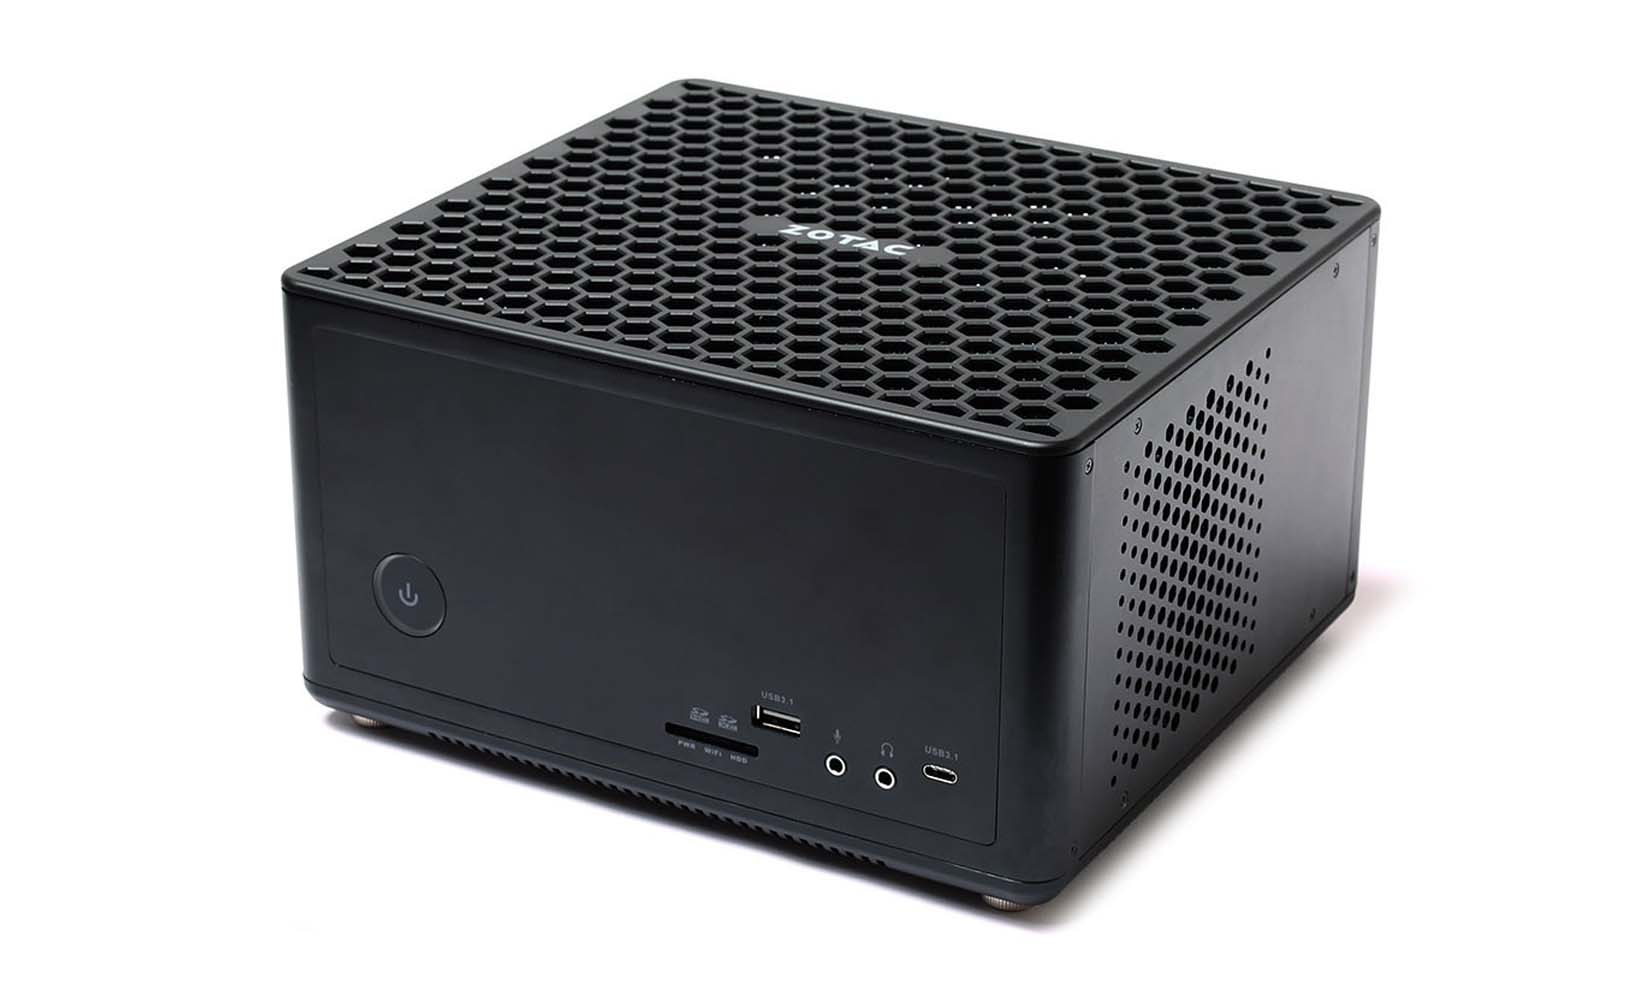 ZOTAC Introduces ZBOX Q Series Powered with Intel Xeon and